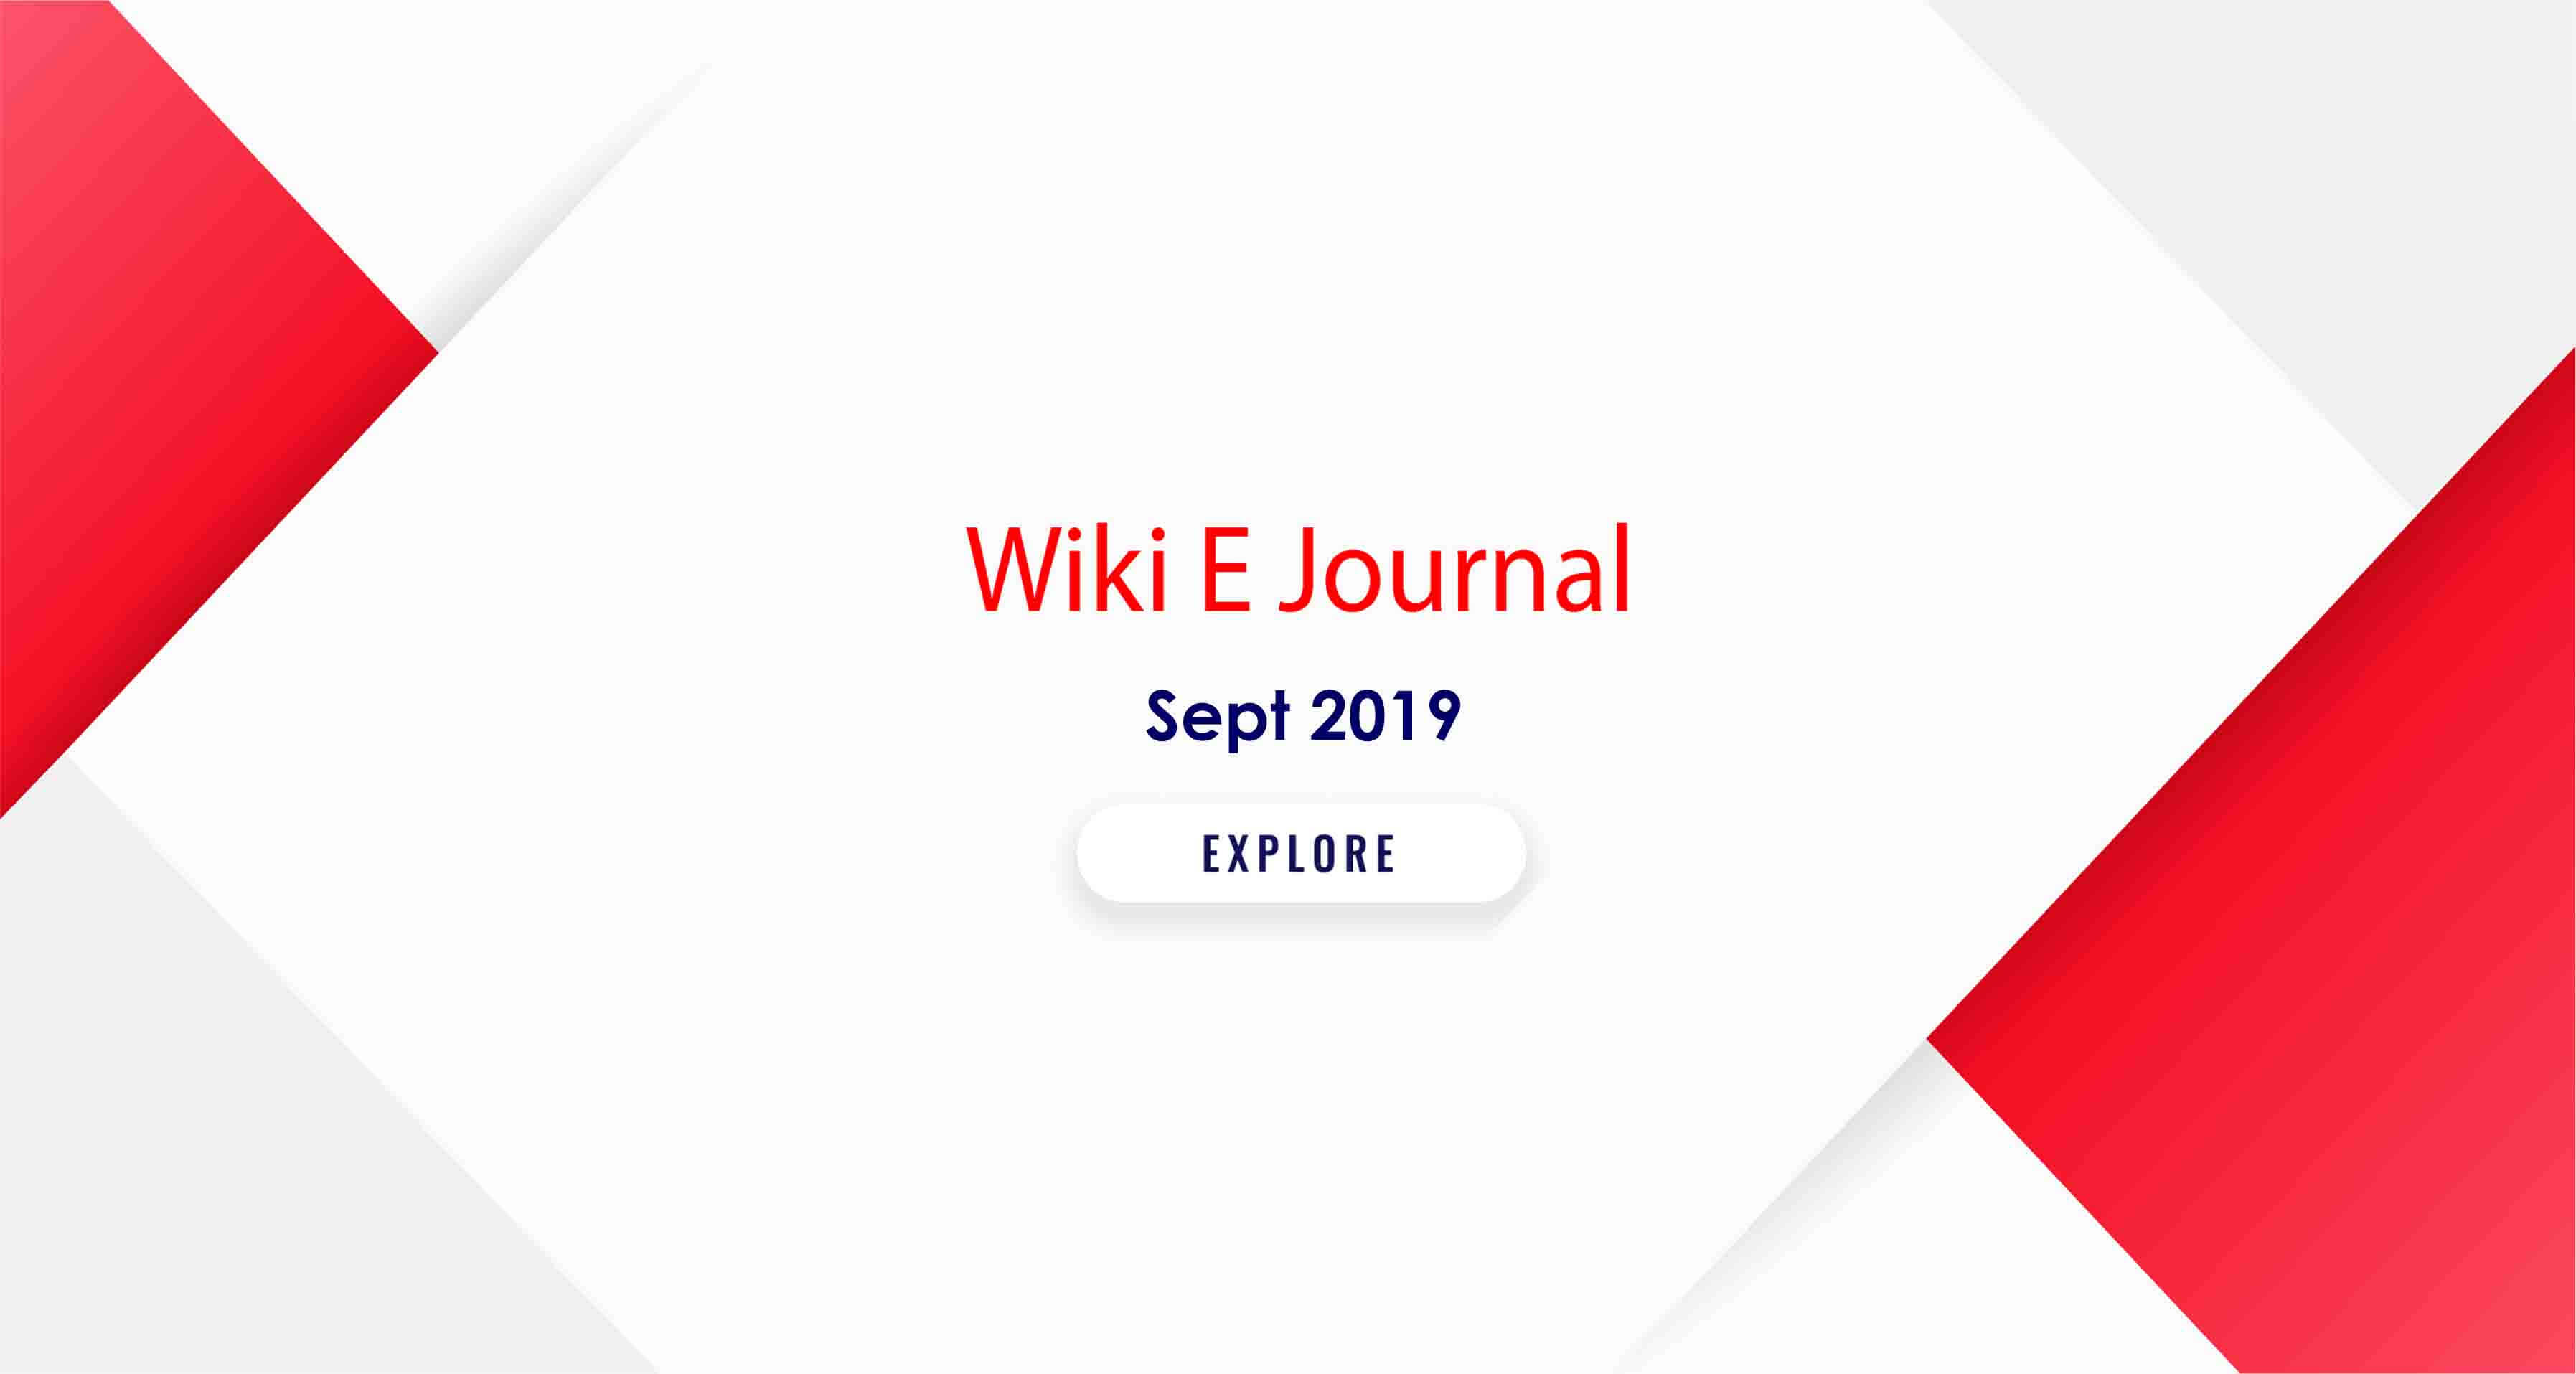 SBS Wiki E Journal Sept 2019